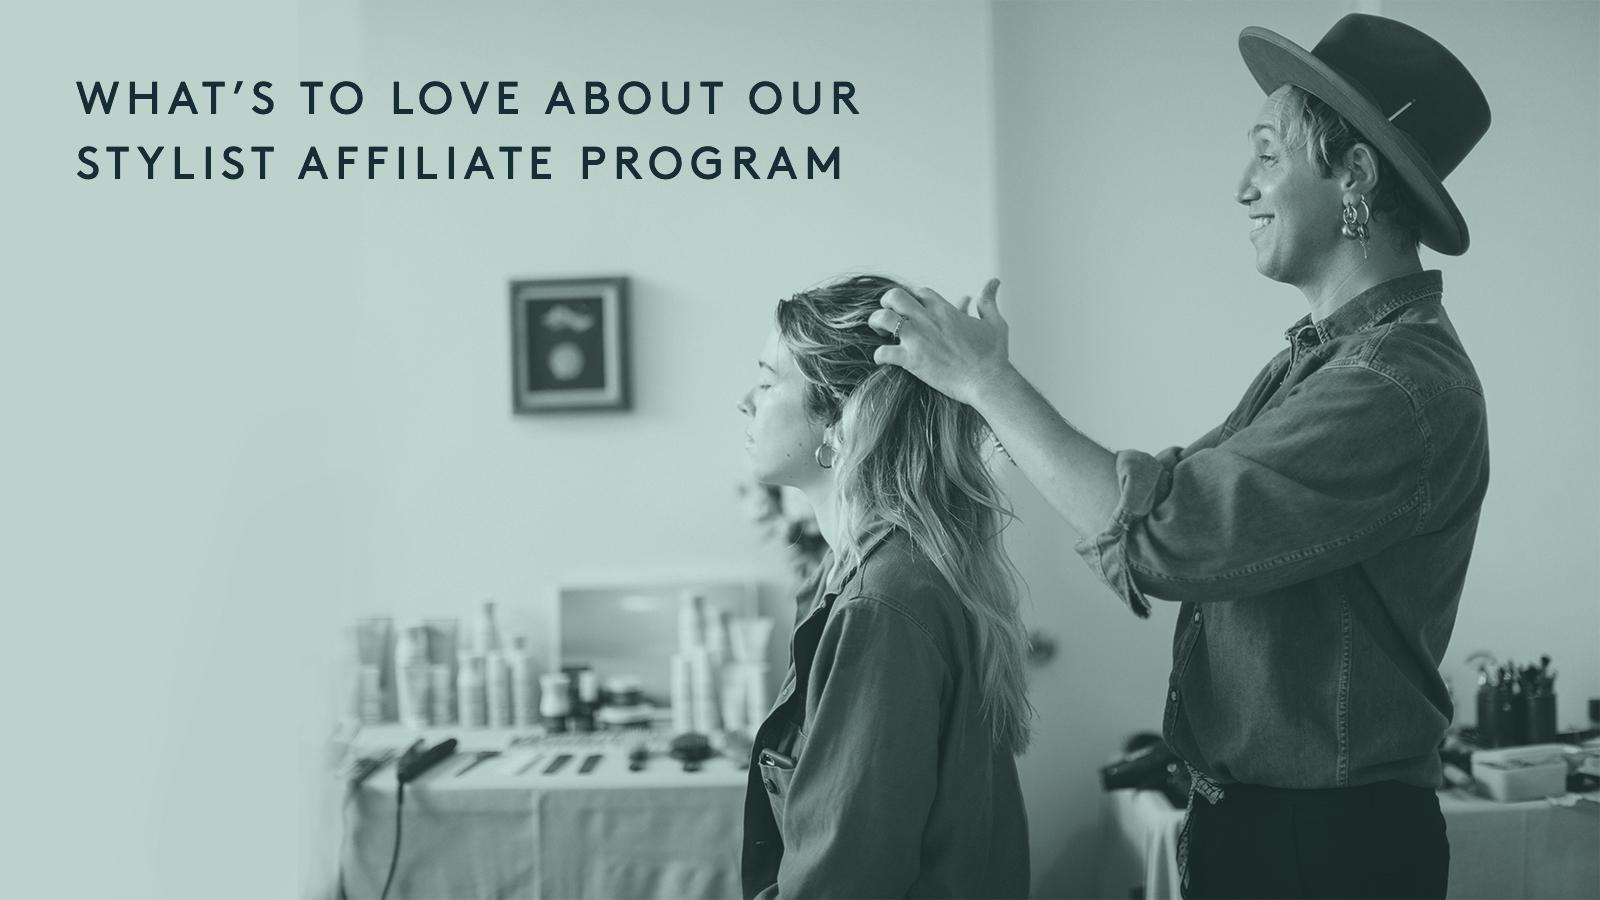 WHAT'S TO LOVE ABOUT OUR STYLIST AFFILIATE PROGRAM